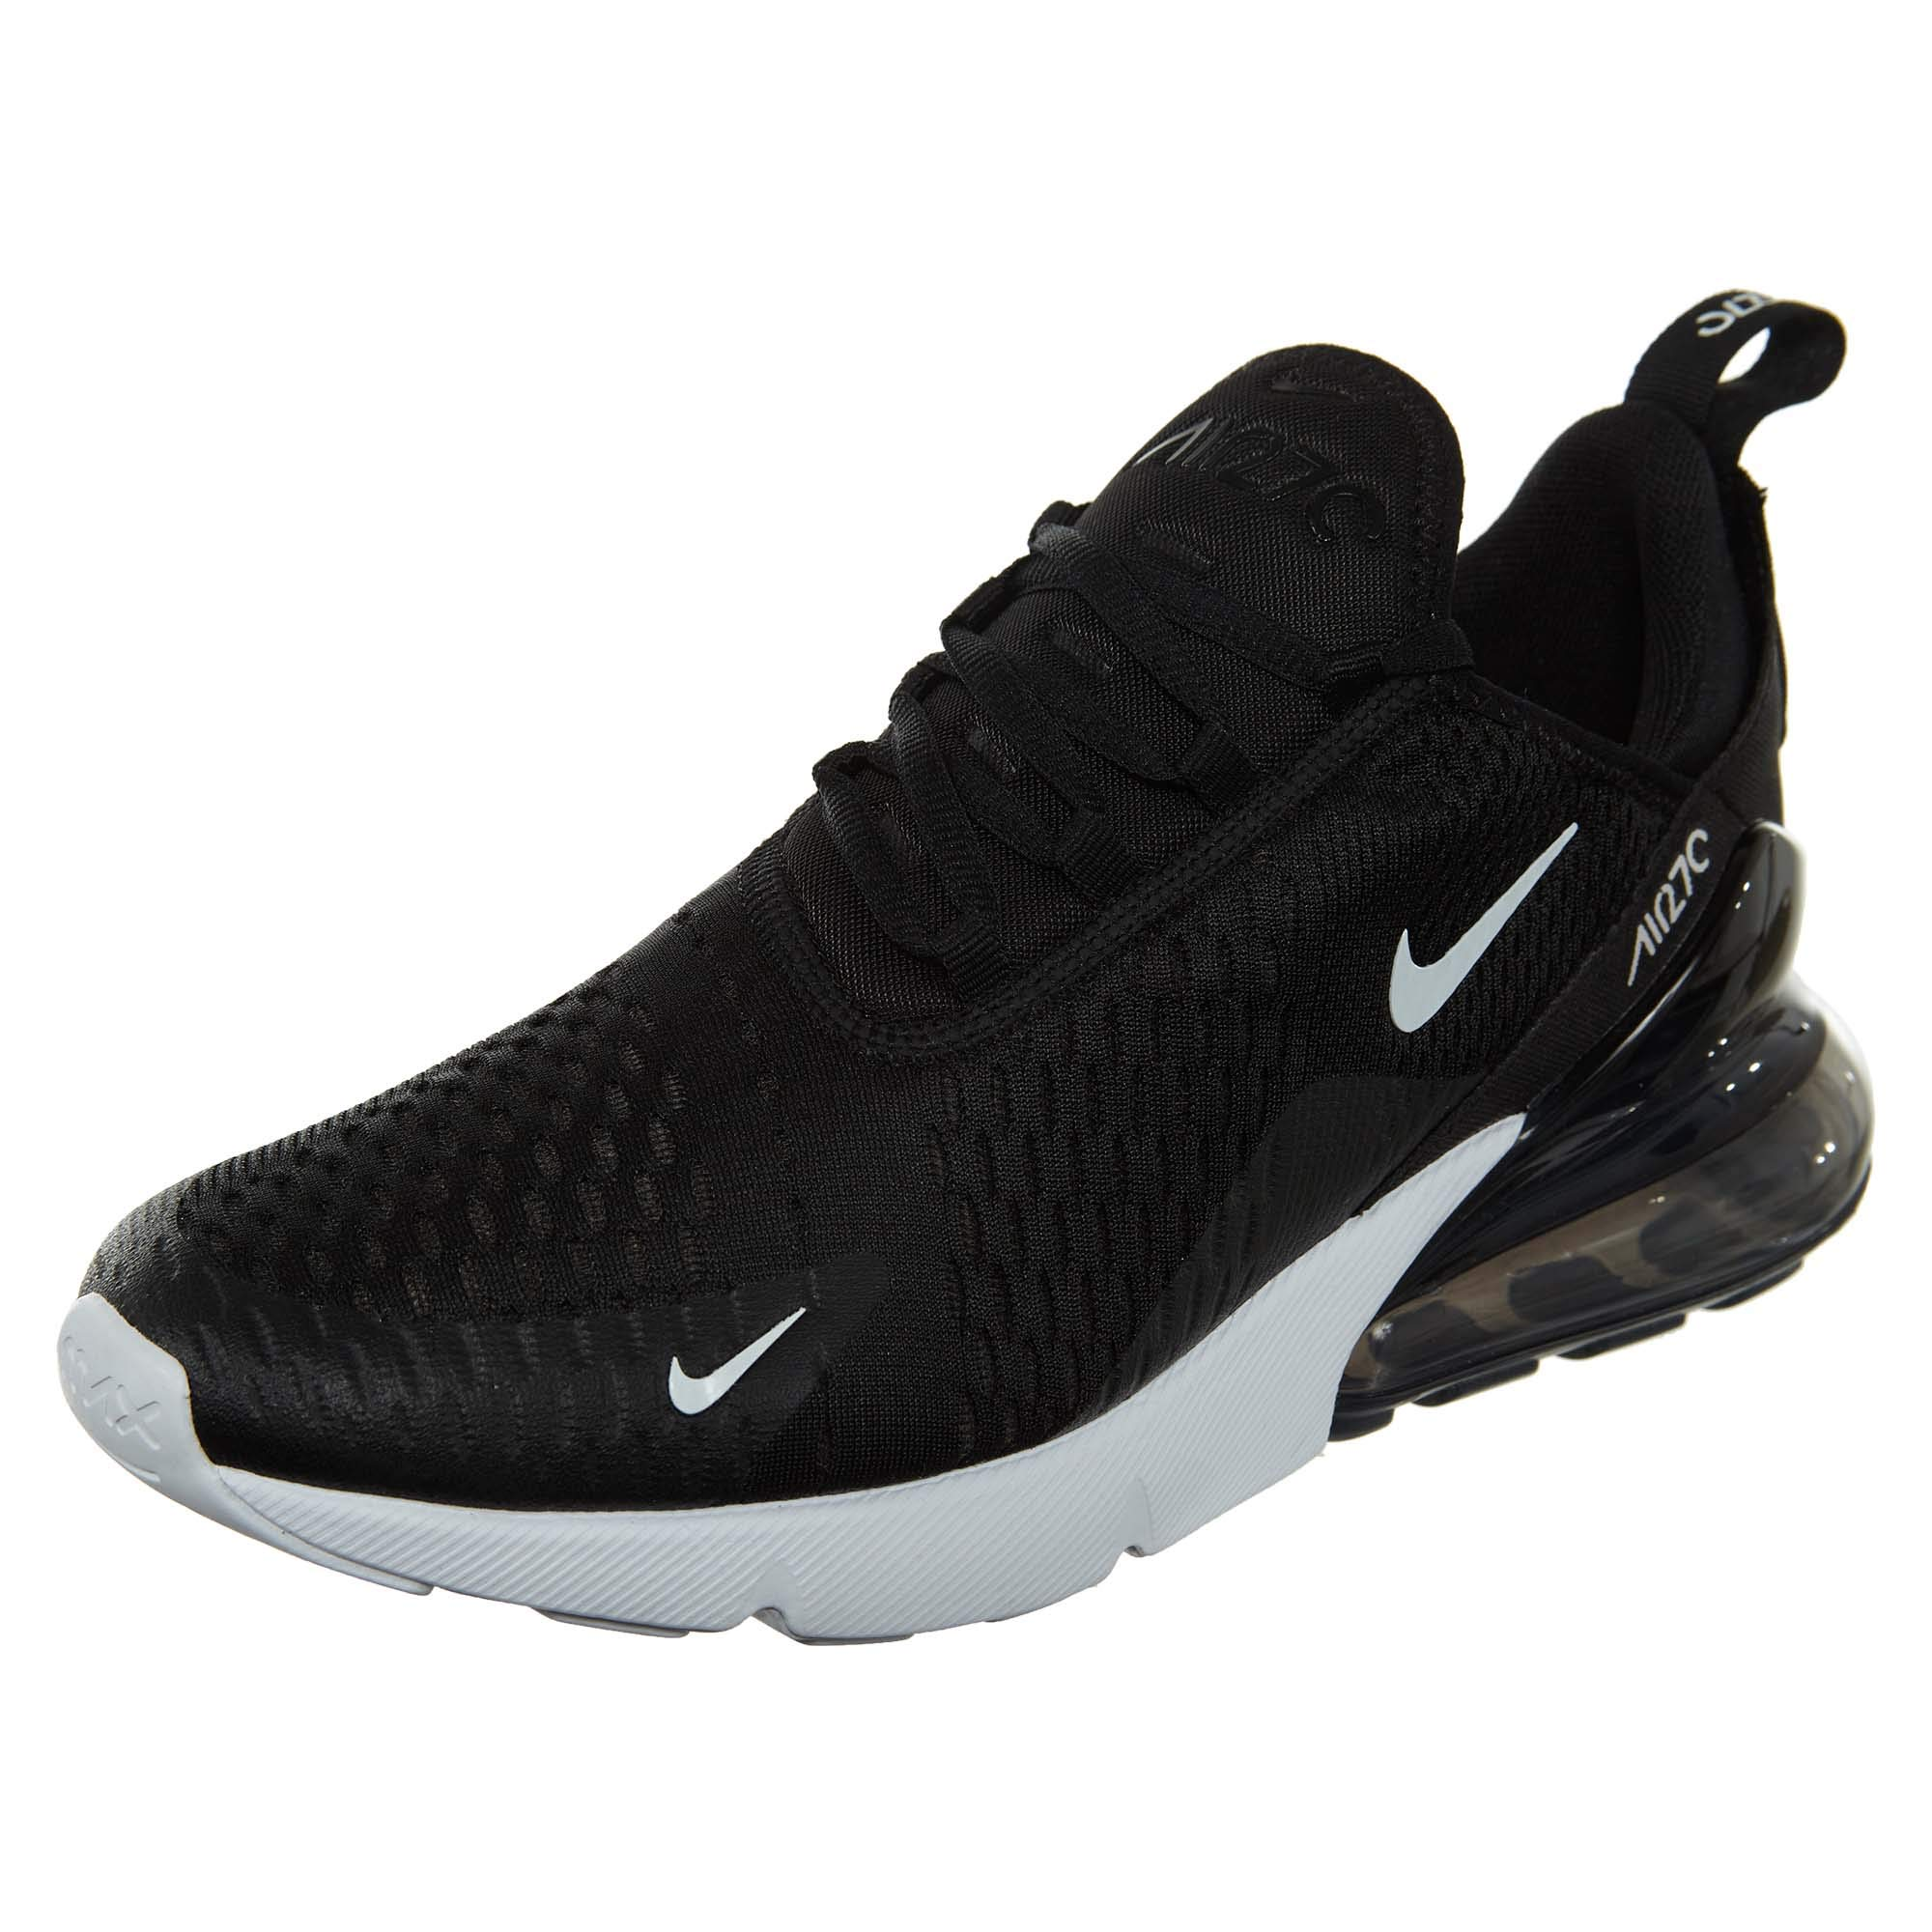 c90e7c68876 Galleon - Nike Mens Air Max 270 Running Shoes Black White Solar Red  Anthracite AH8050-002 Size 12